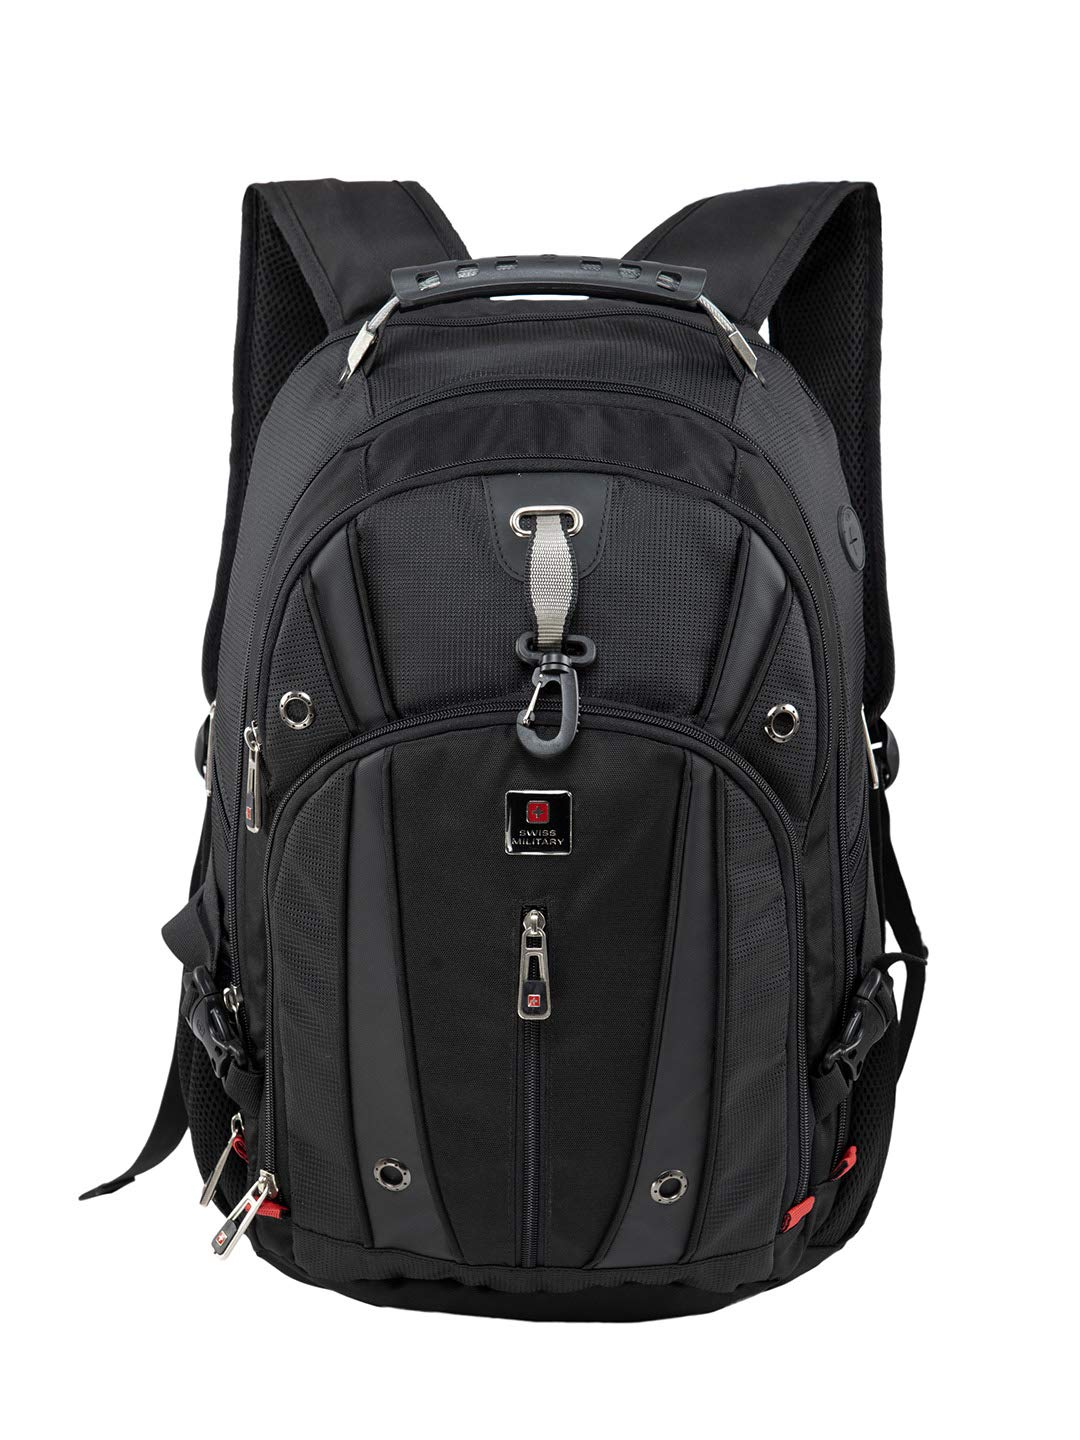 Swiss Military Luxery Collection 31 Ltrs Black Laptop Backpack (LBP76)